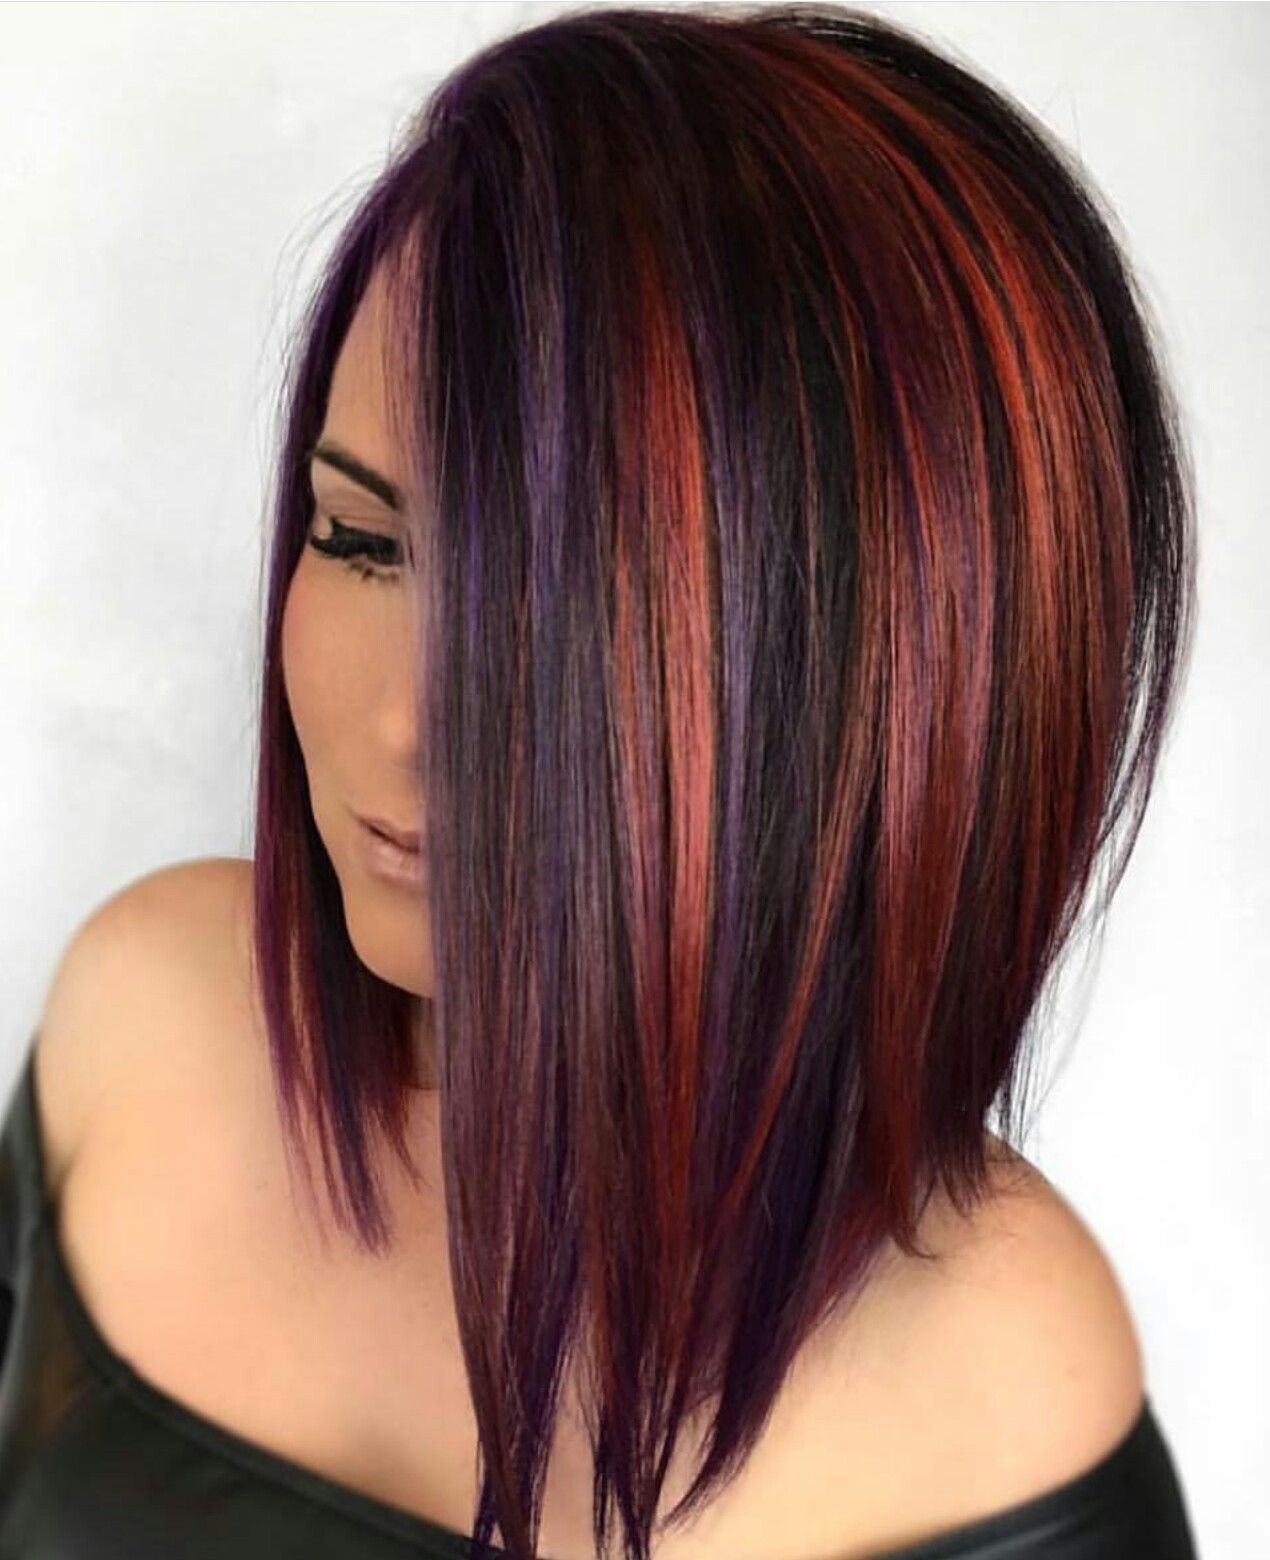 Pin by pamela simmons on hairstyles pinterest hair coloring